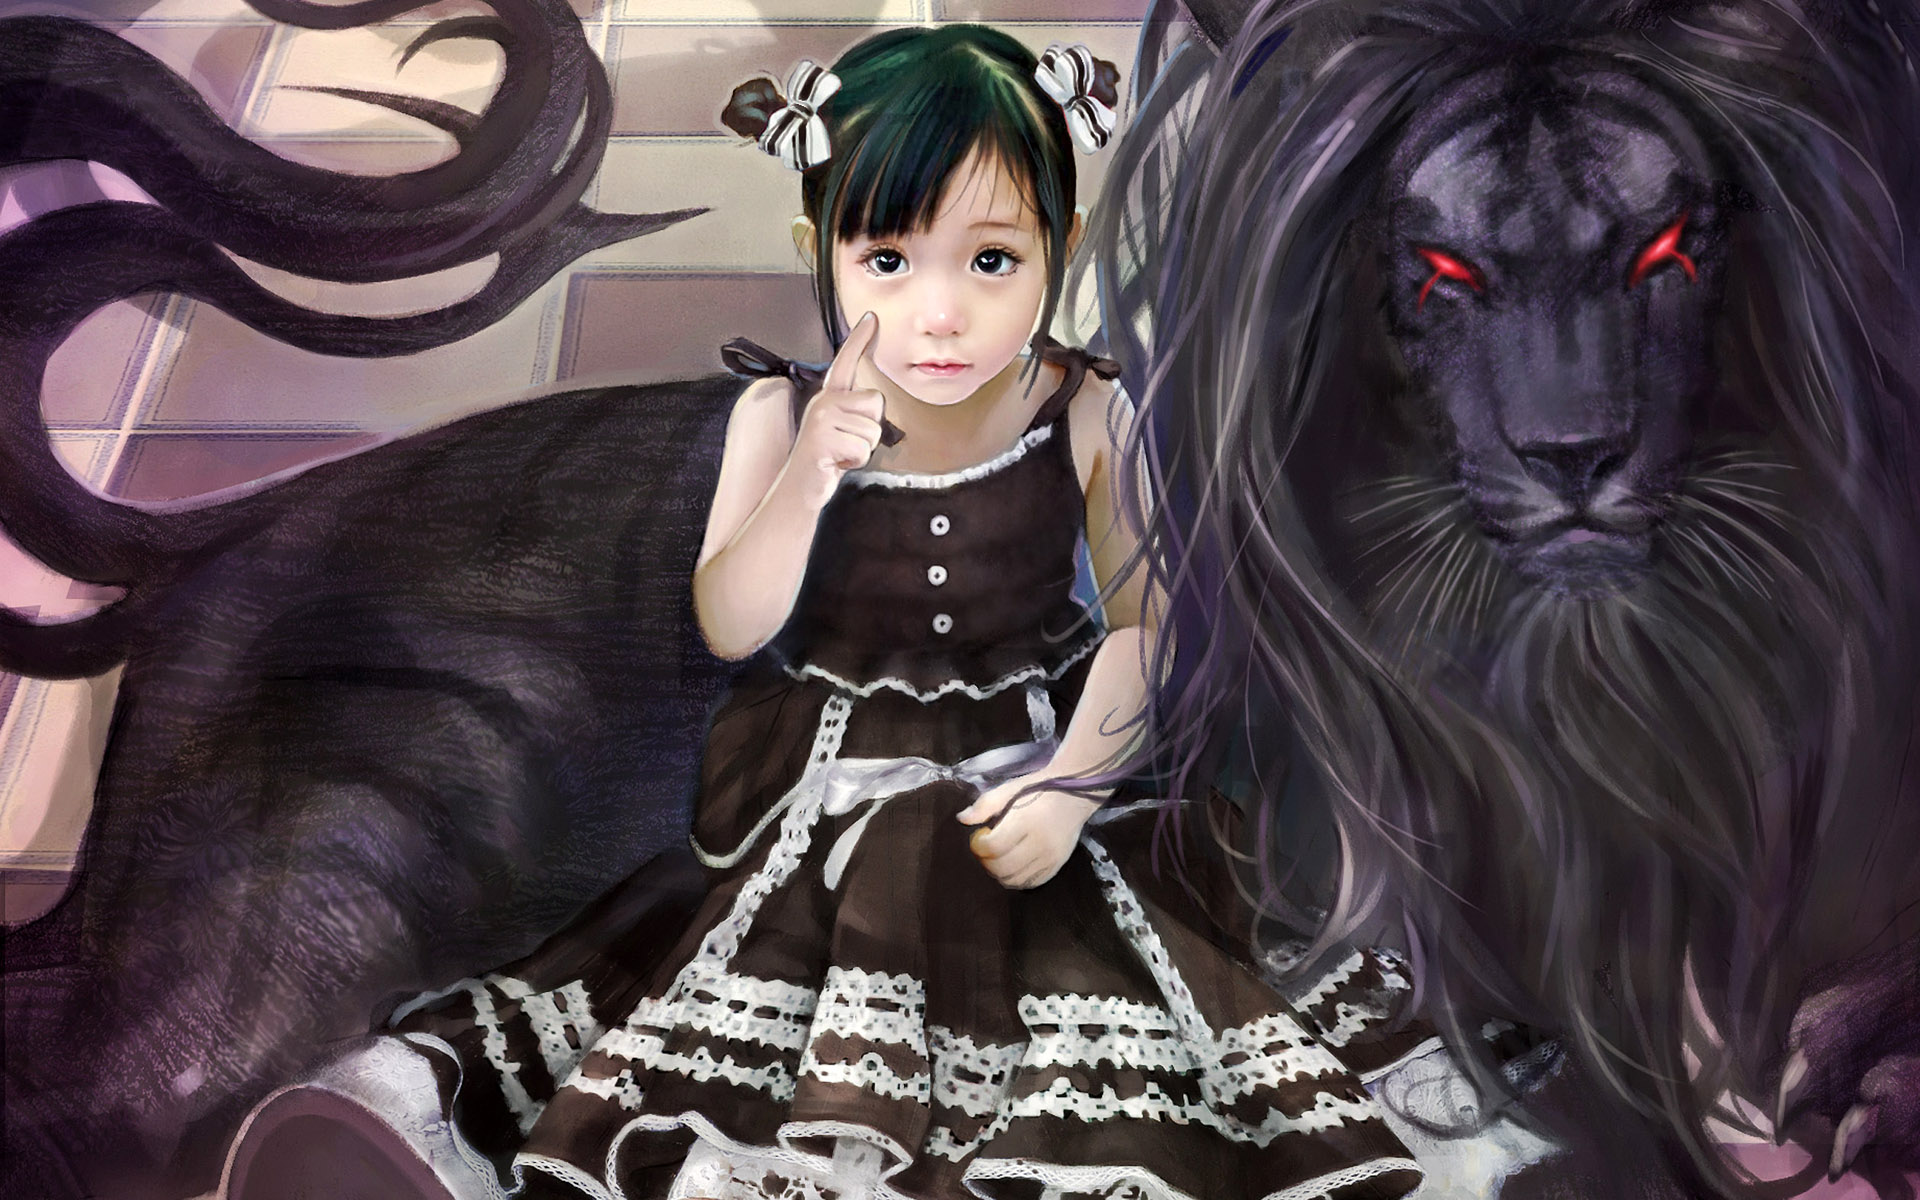 The little girl and the Manticore